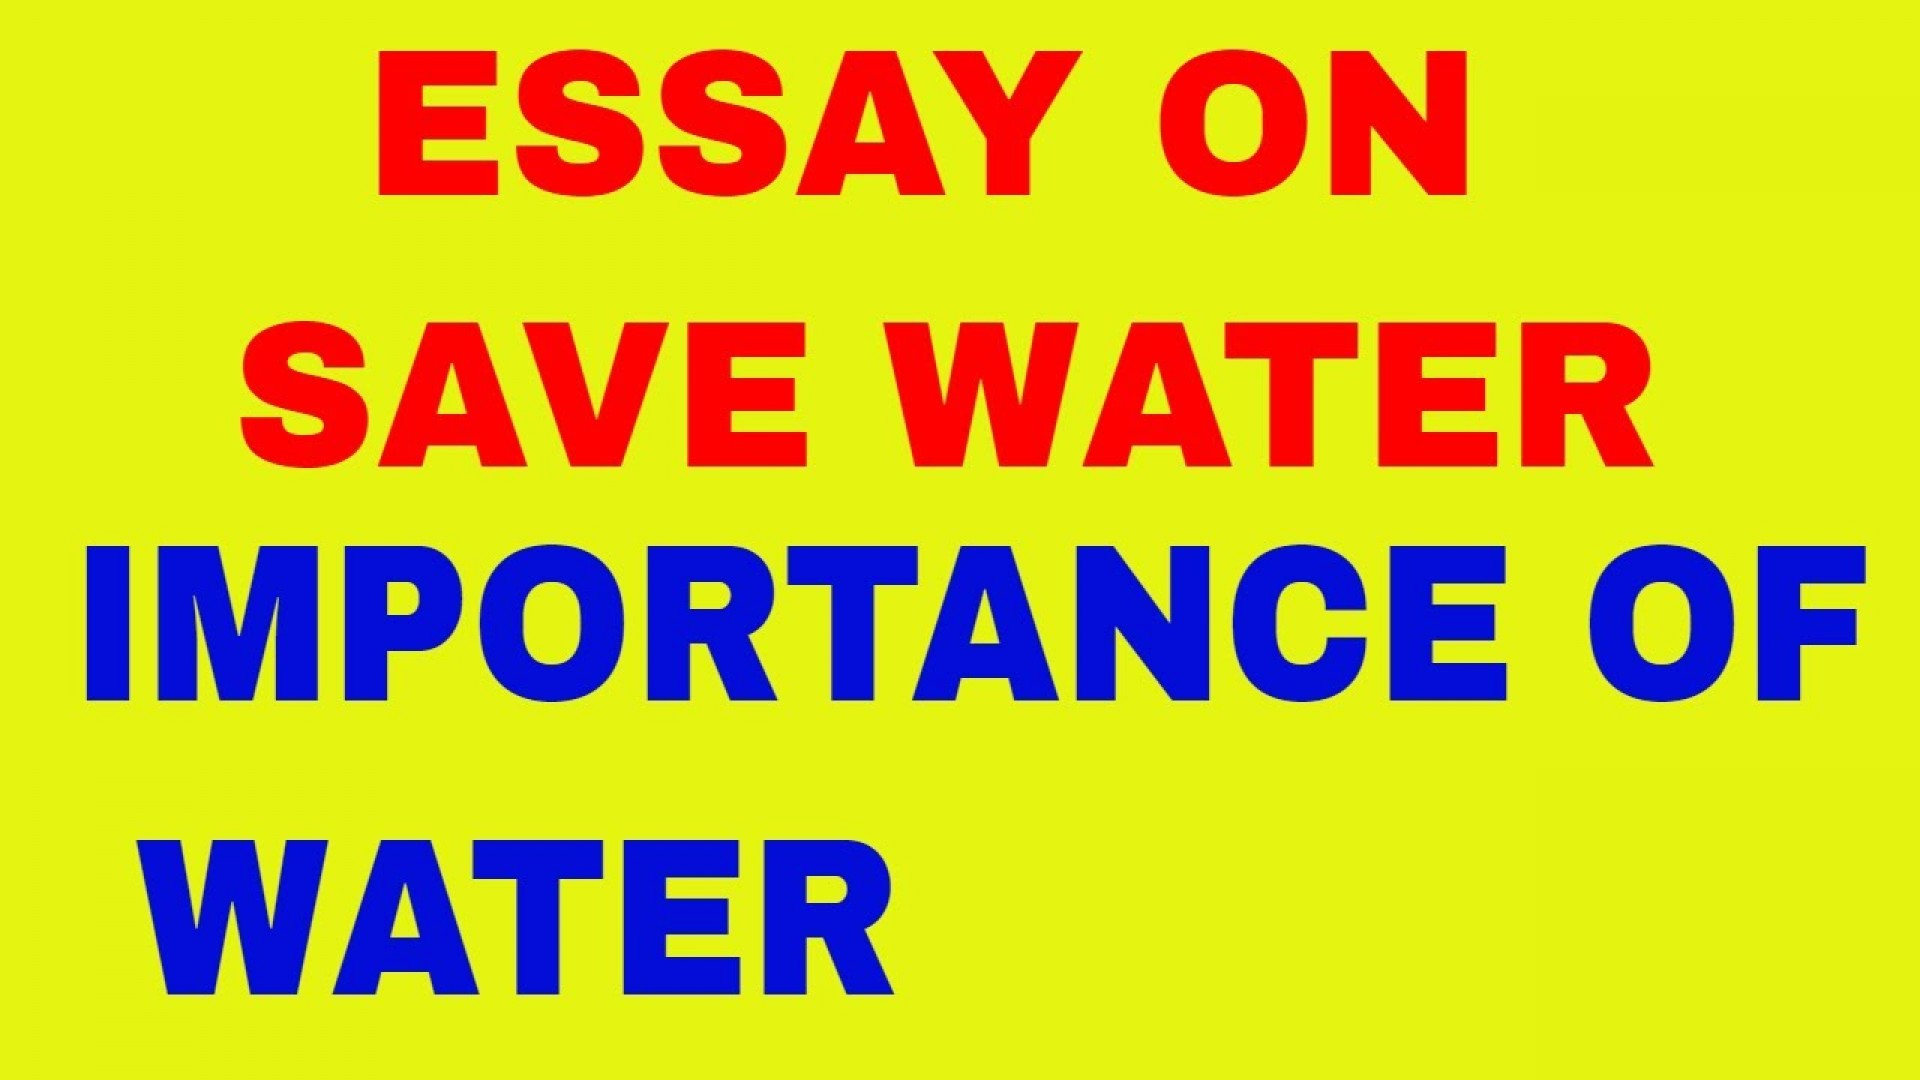 002 Save Water Life Essay Words Example Stunning 300 1920